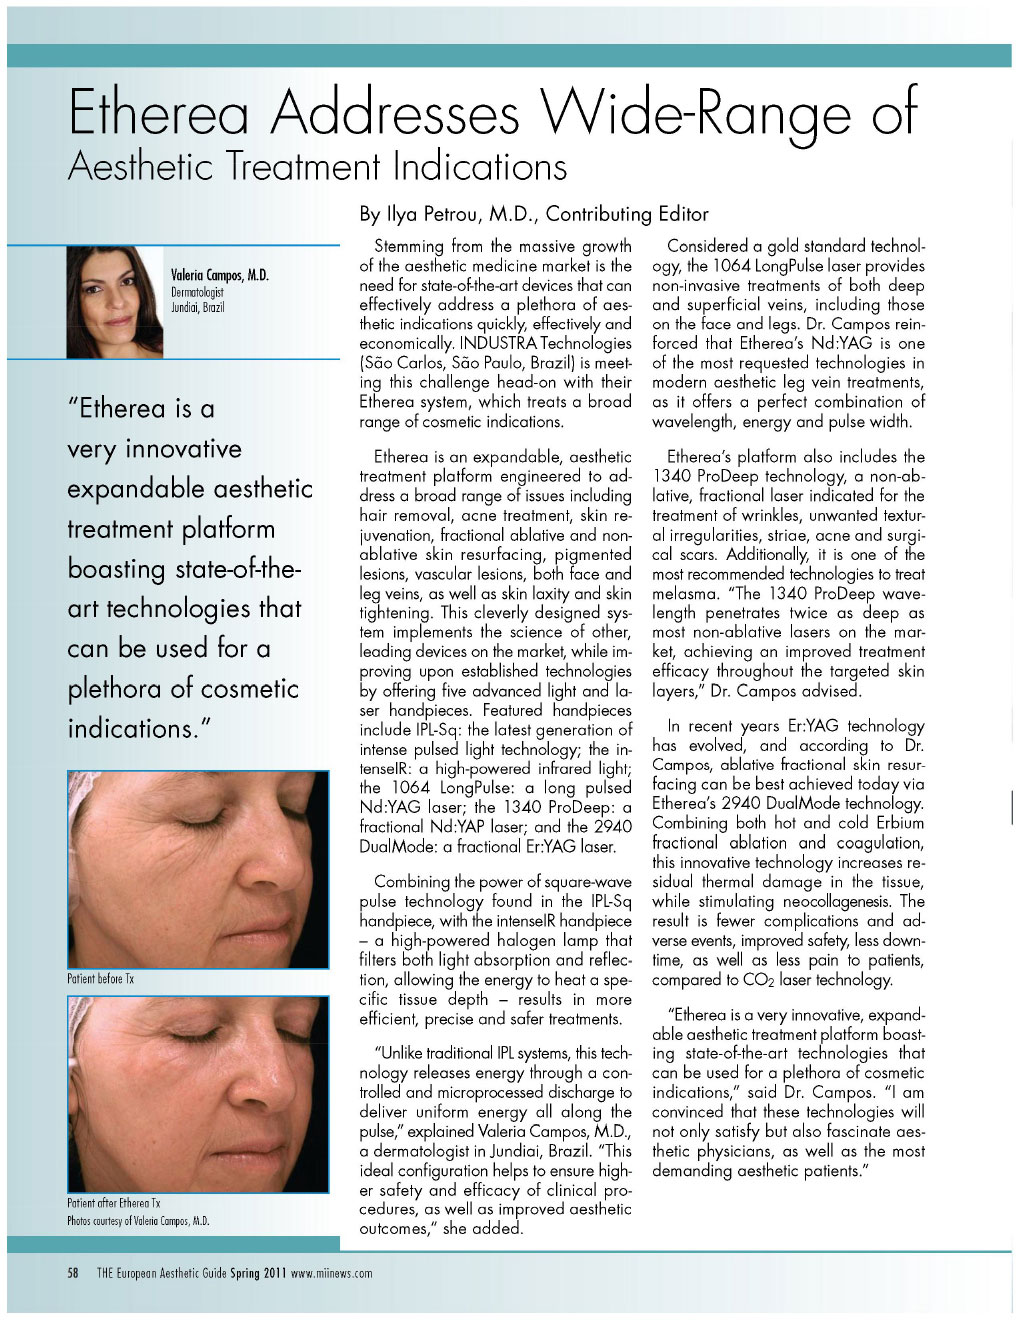 etherea® addresses wide range of aesthetic treatment indications